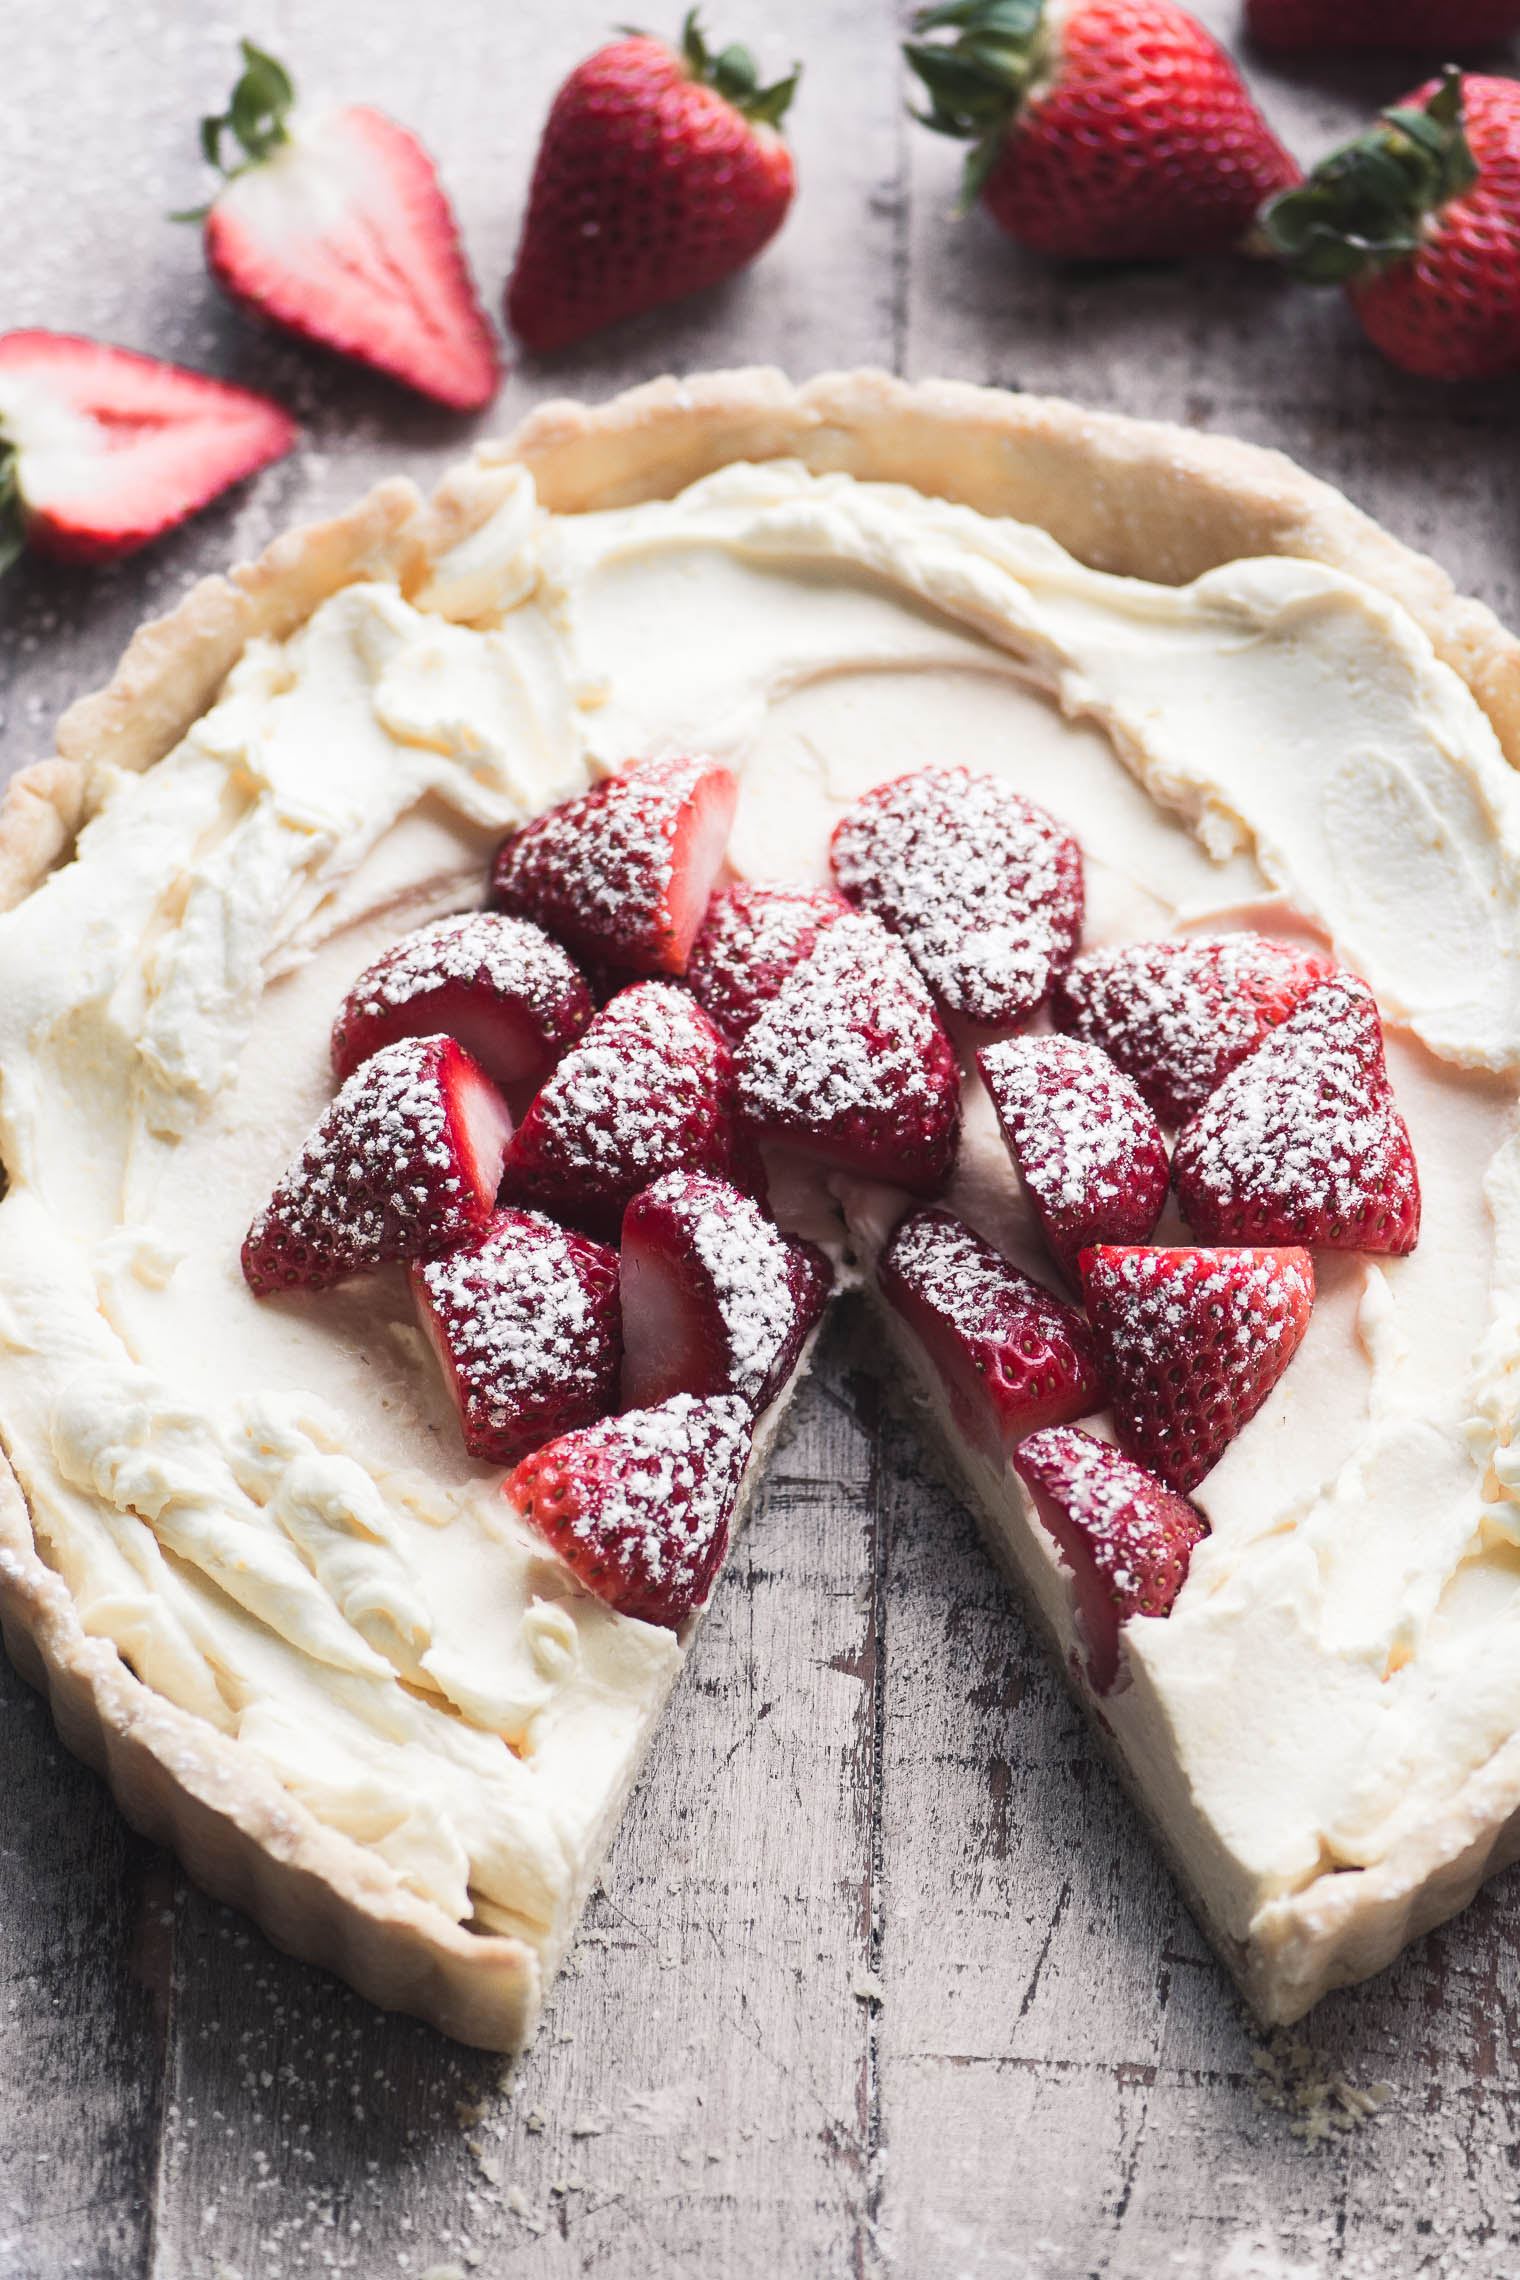 strawberries and cream tart with one piece cut from it, on wooden board